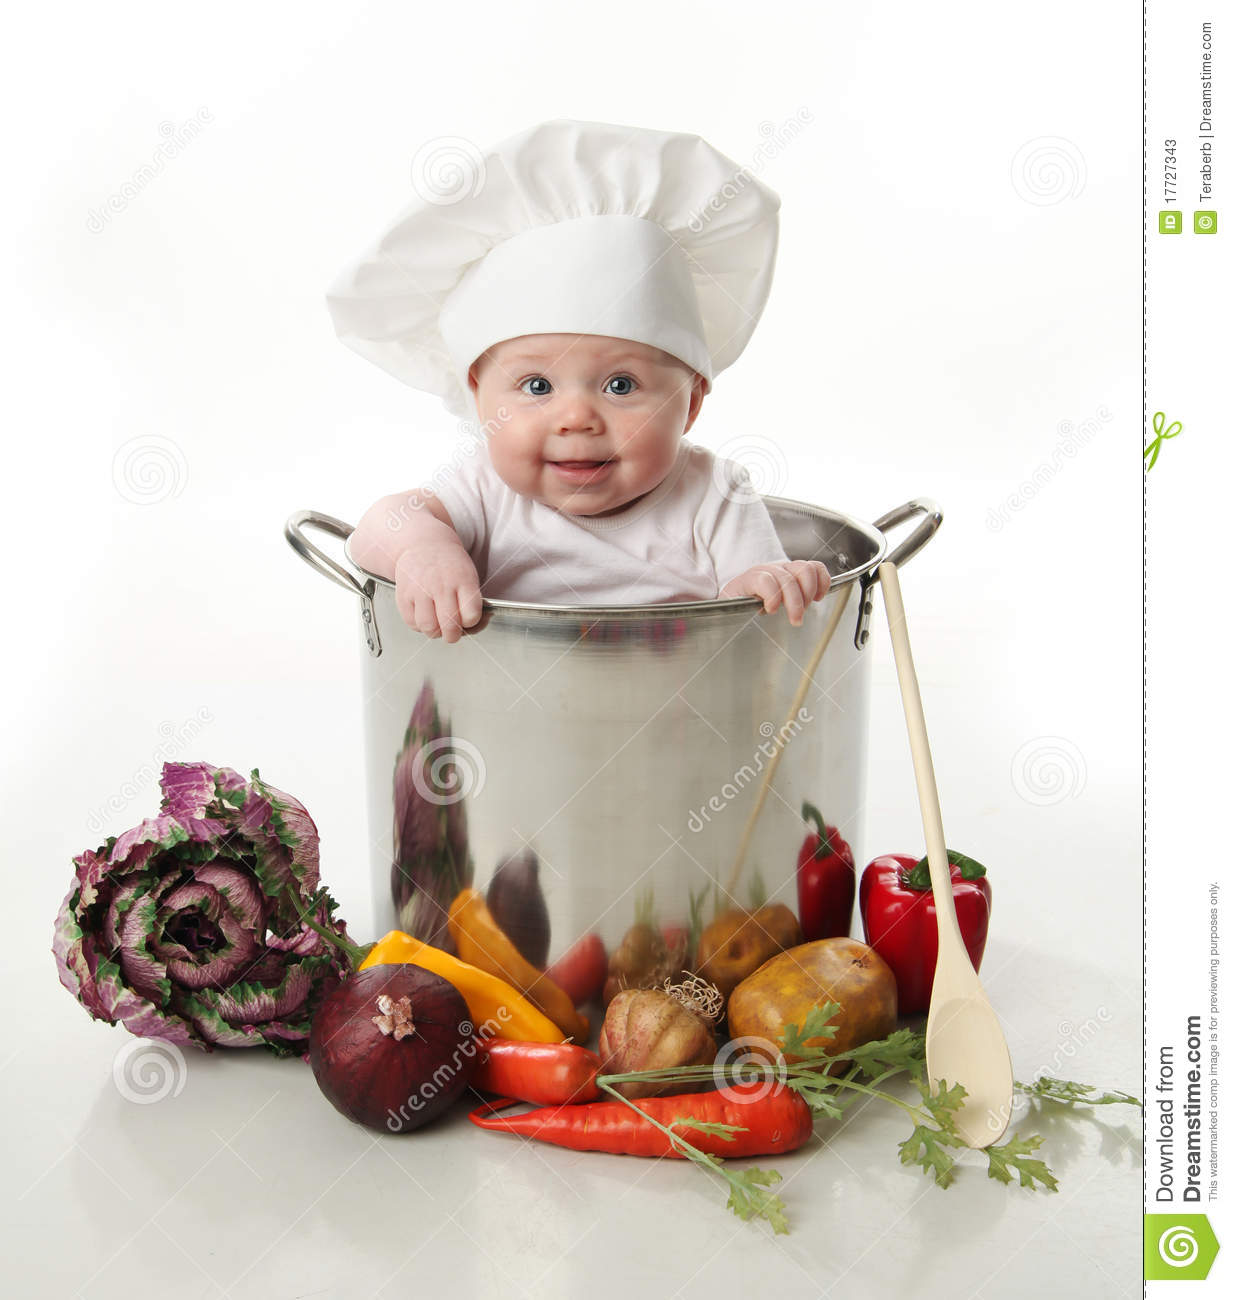 Portrait of a smiling baby sitting inside a large cooking stock pot